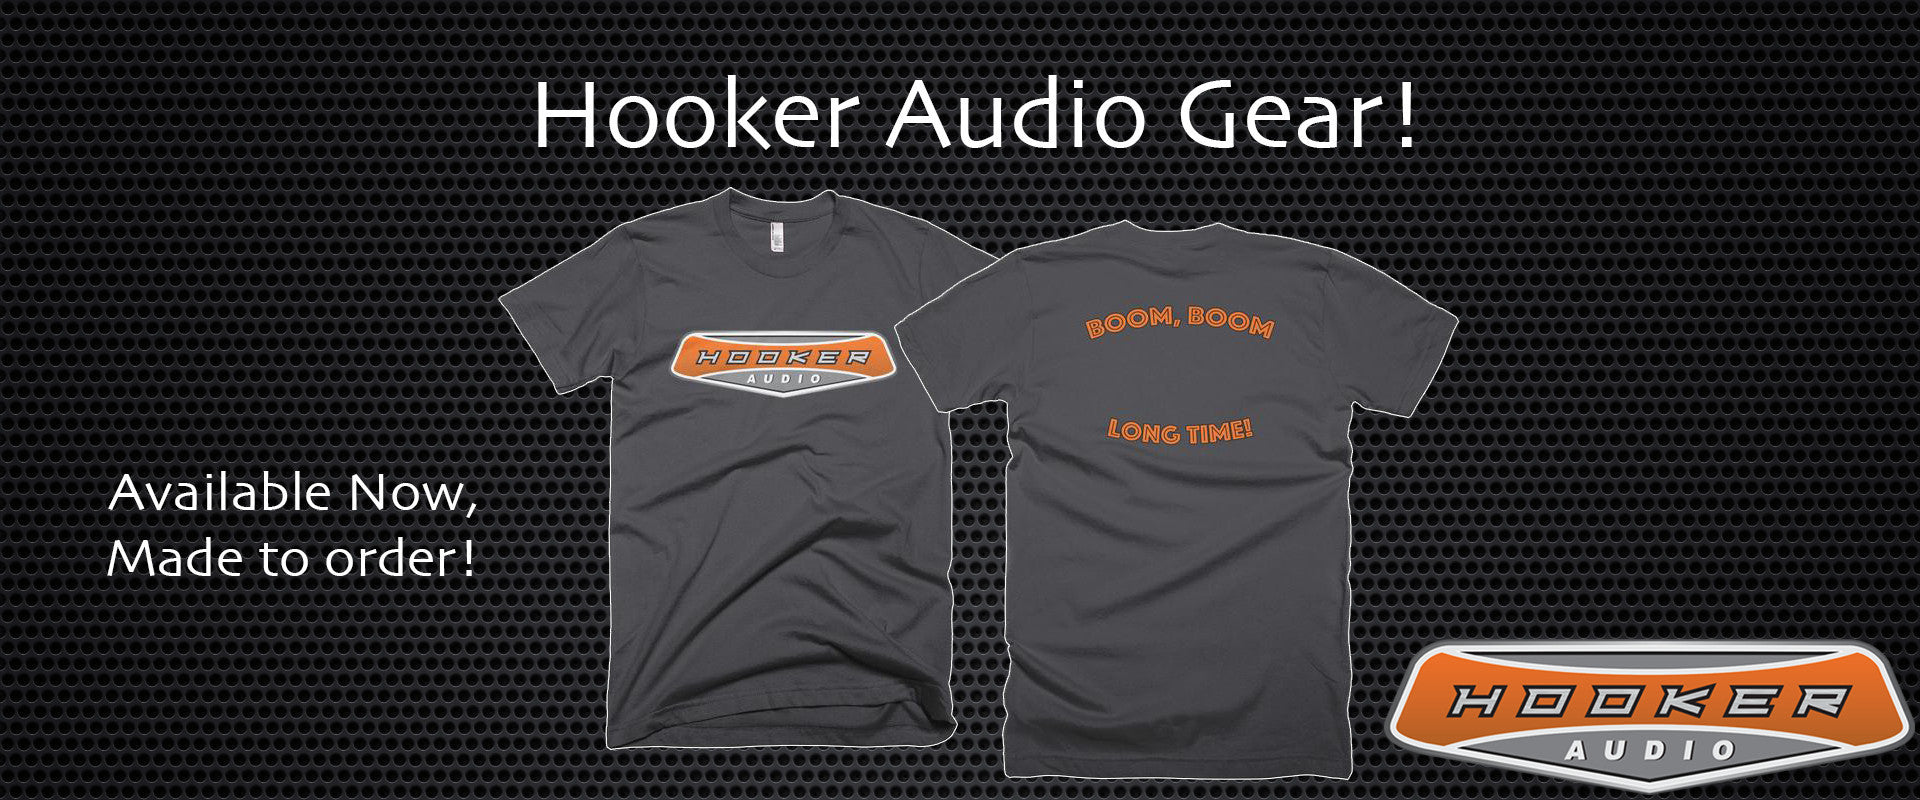 hooker audio gear